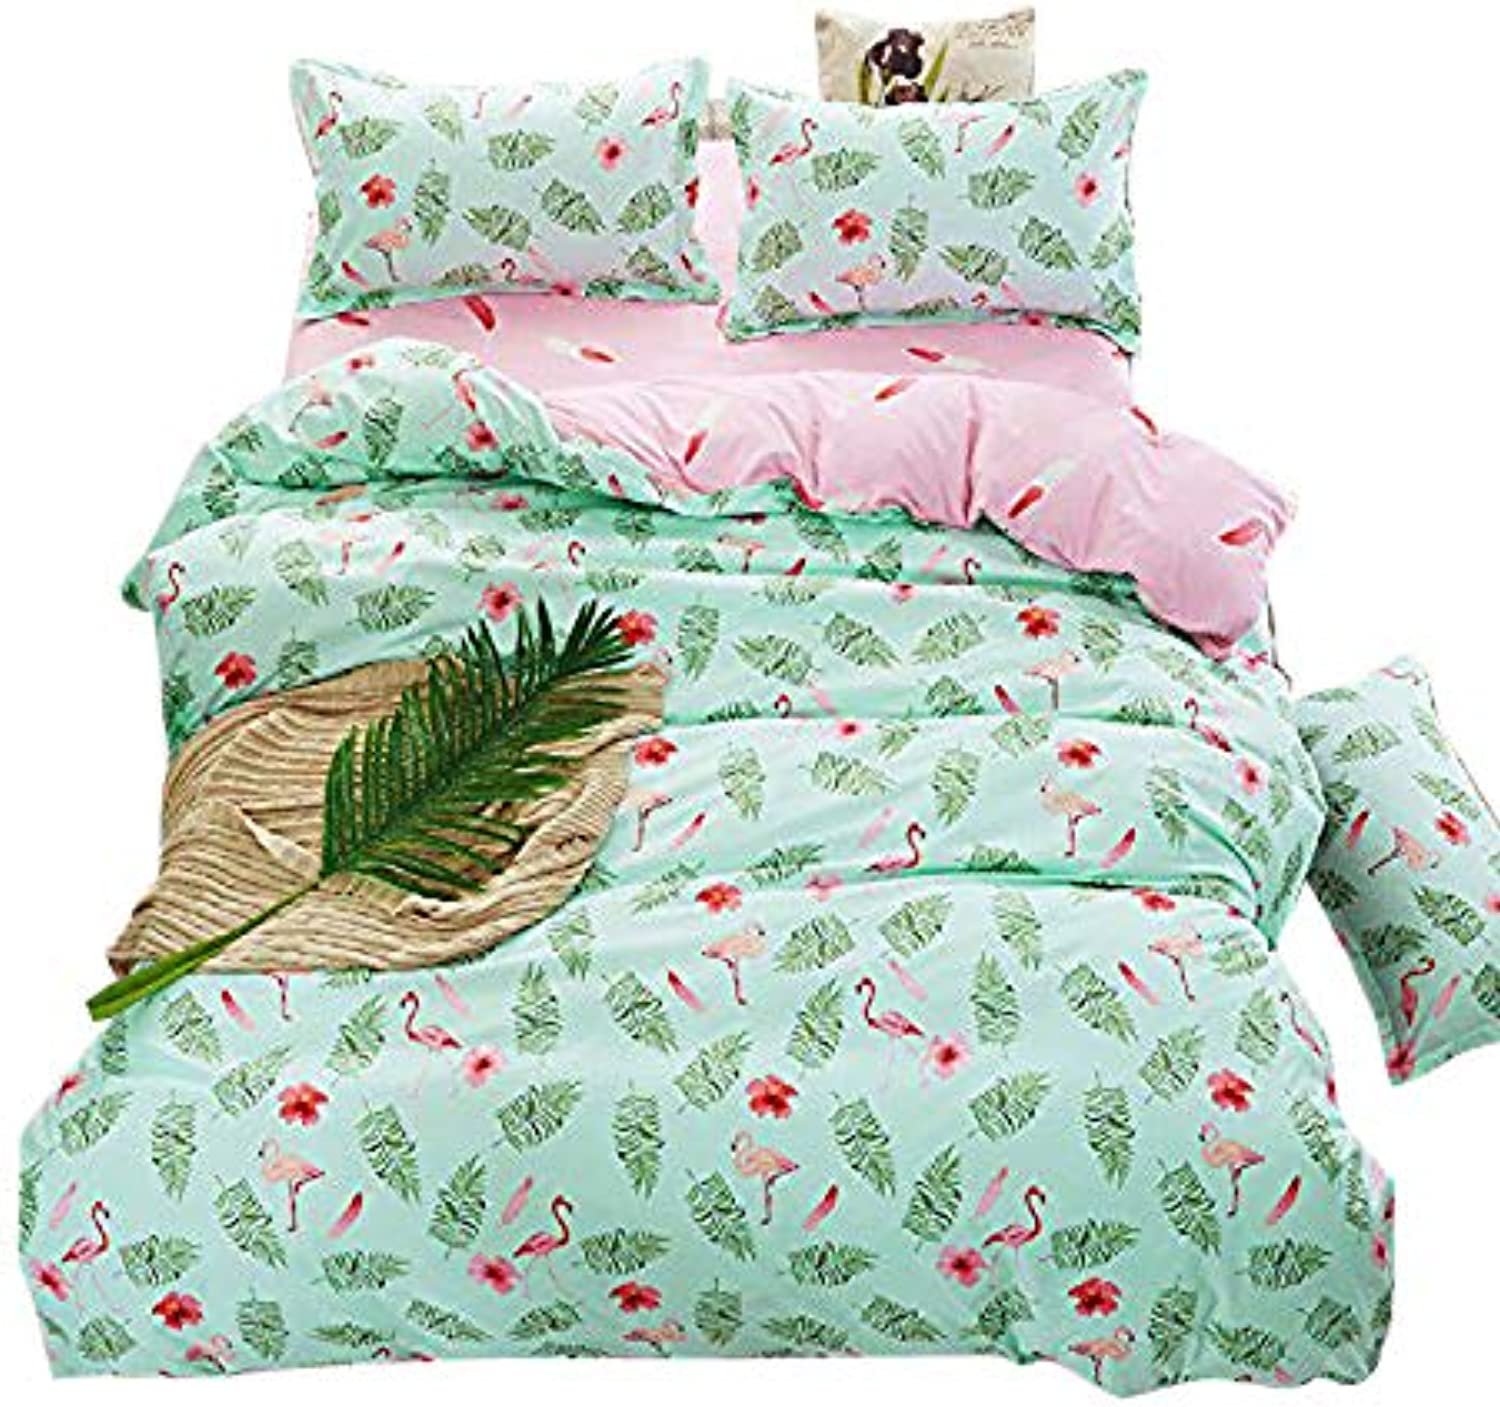 4pcs Set Beddingset Duvet Cover Flat Sheet Pillowcase No Comforter HM Twin Full Queen Animal Cow Bird Design (Full, Leaf Bird, Green)